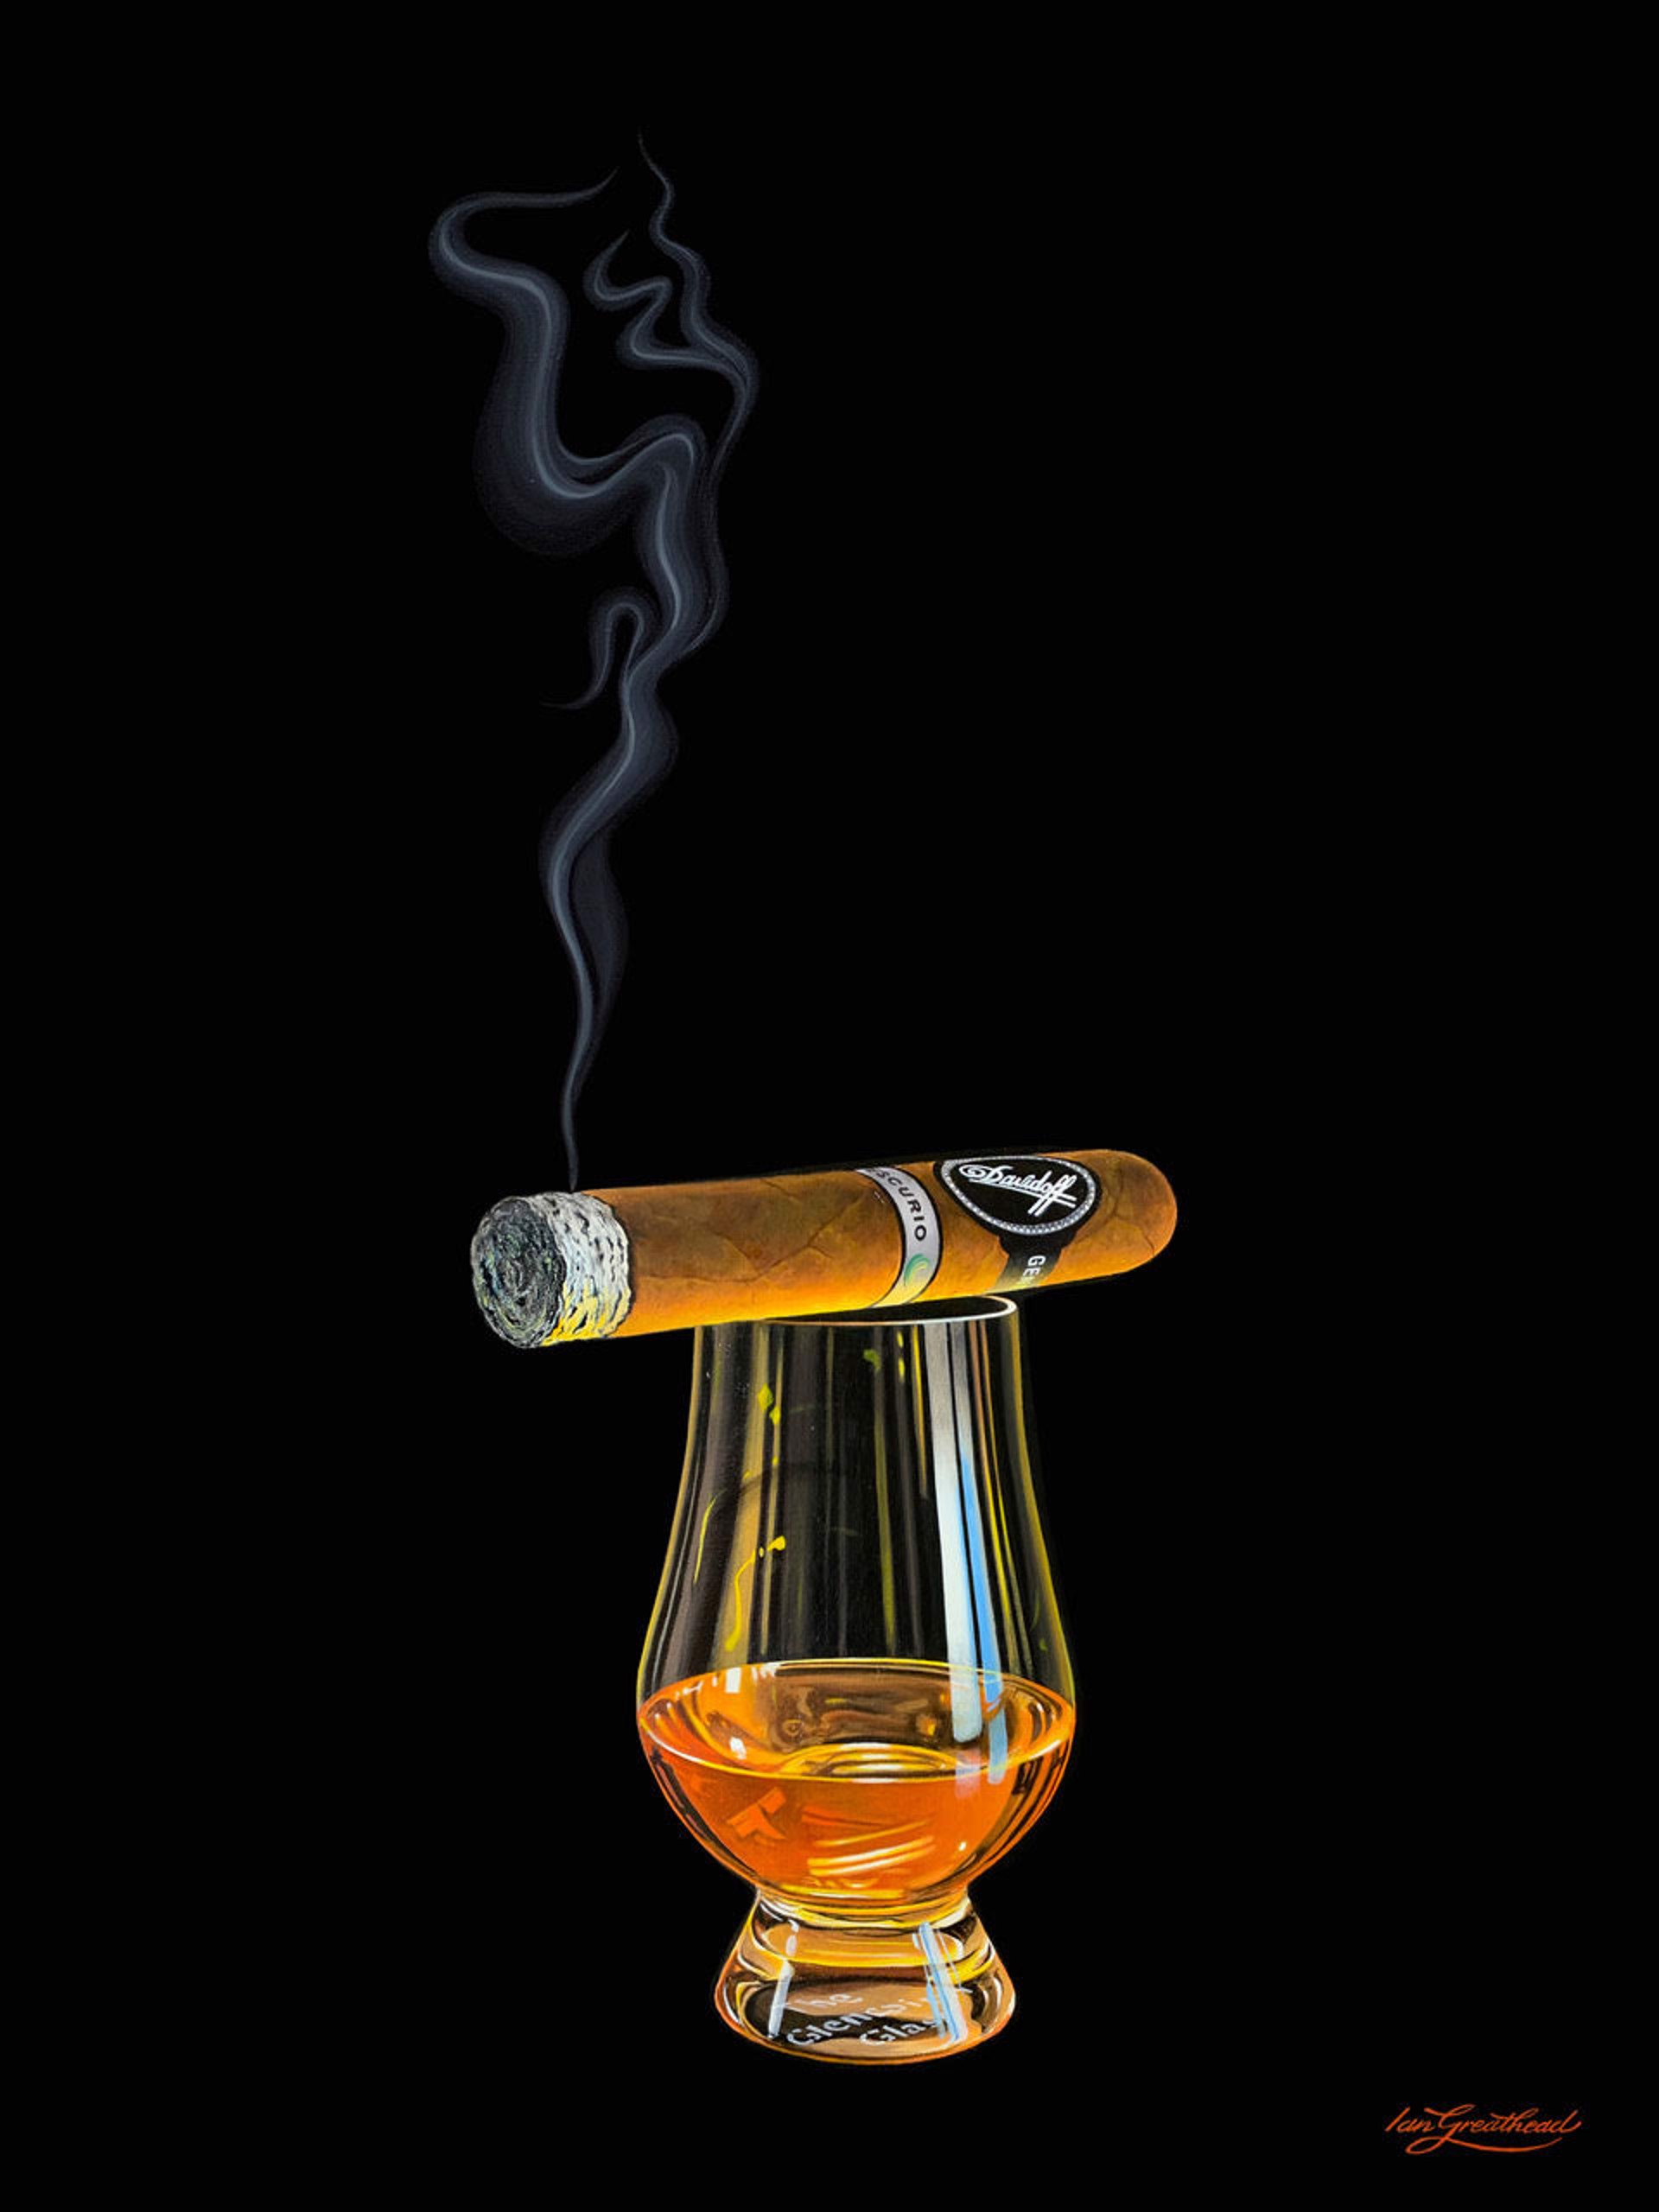 Davidoff and Bourbon by Ian Greathead